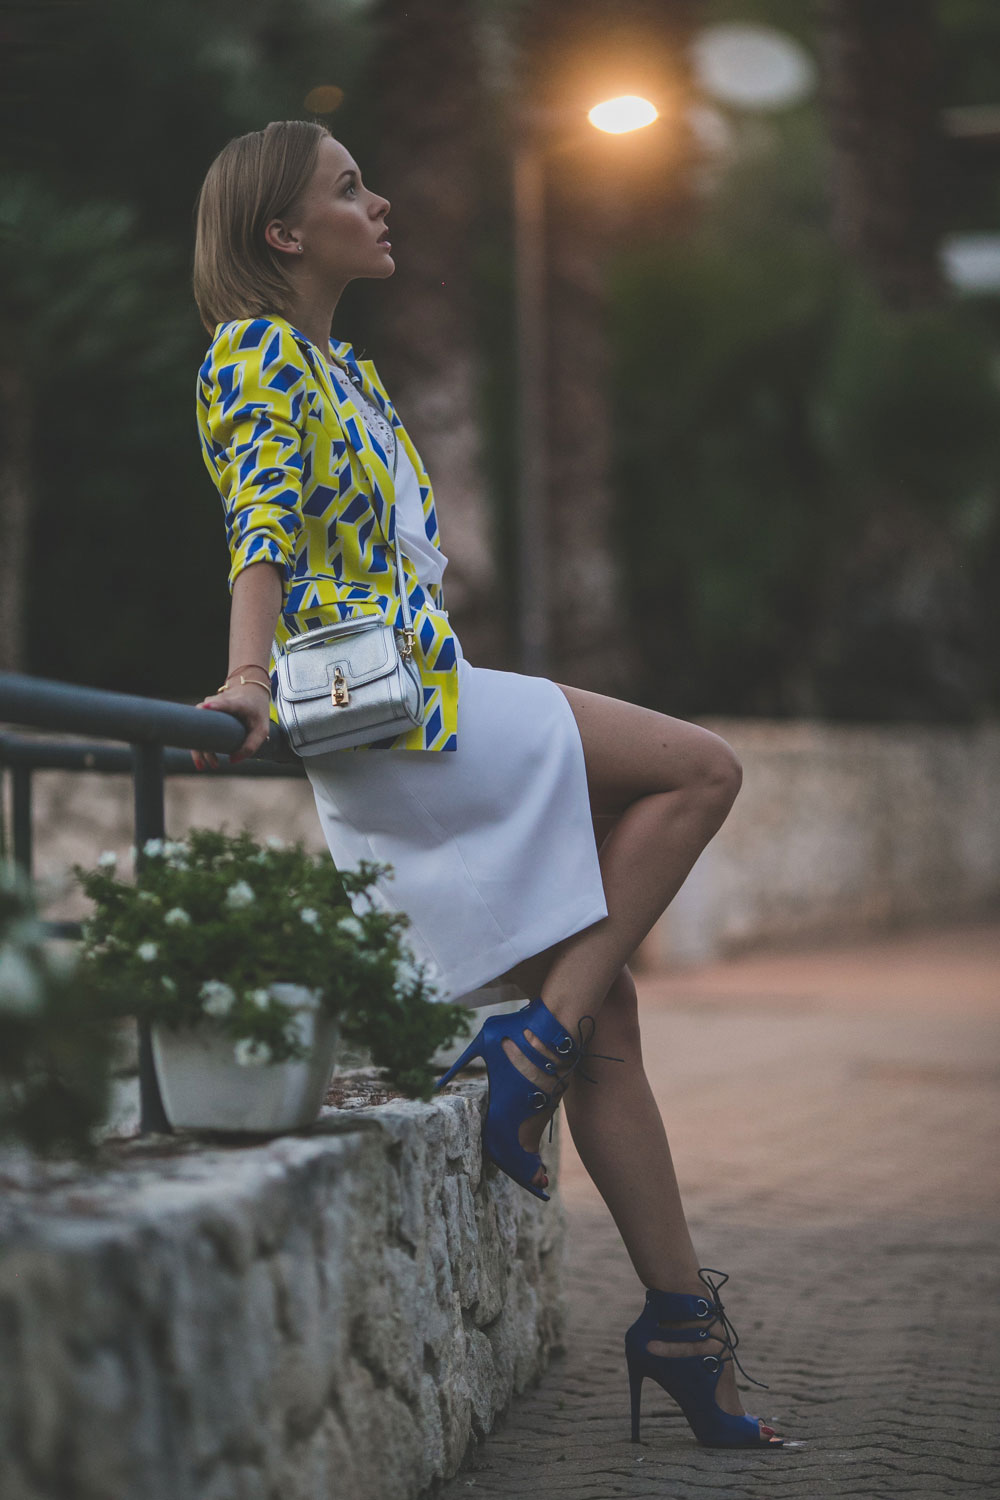 darya-kamalova-thecablook-fashion-lifestyle-blogger-from-thecablook-com-in-puglia-gargano-baia-dei-faraglioni-allegro-italia-in-zara-white-skirt-dolce-gabbana-crossbody-bag-missguided-blue-sandals-1827